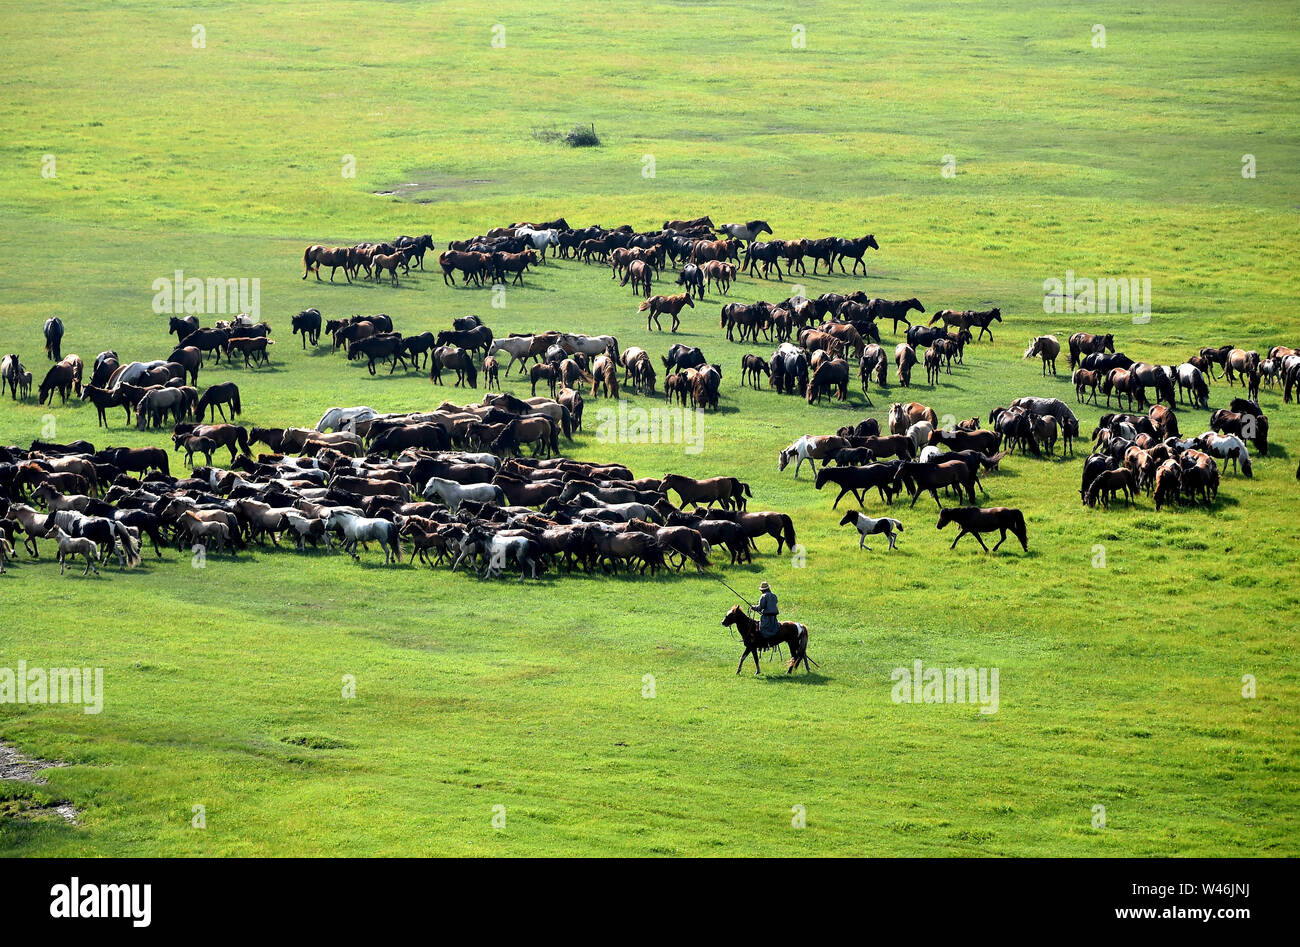 Xilingol, China's Inner Mongolia Autonomous Region. 20th July, 2019. A herdsman drives horses during an equine culture event in East Ujimqin Banner of Xilingol League, north China's Inner Mongolia Autonomous Region, July 20, 2019. Credit: Ren Junchuan/Xinhua/Alamy Live News - Stock Image